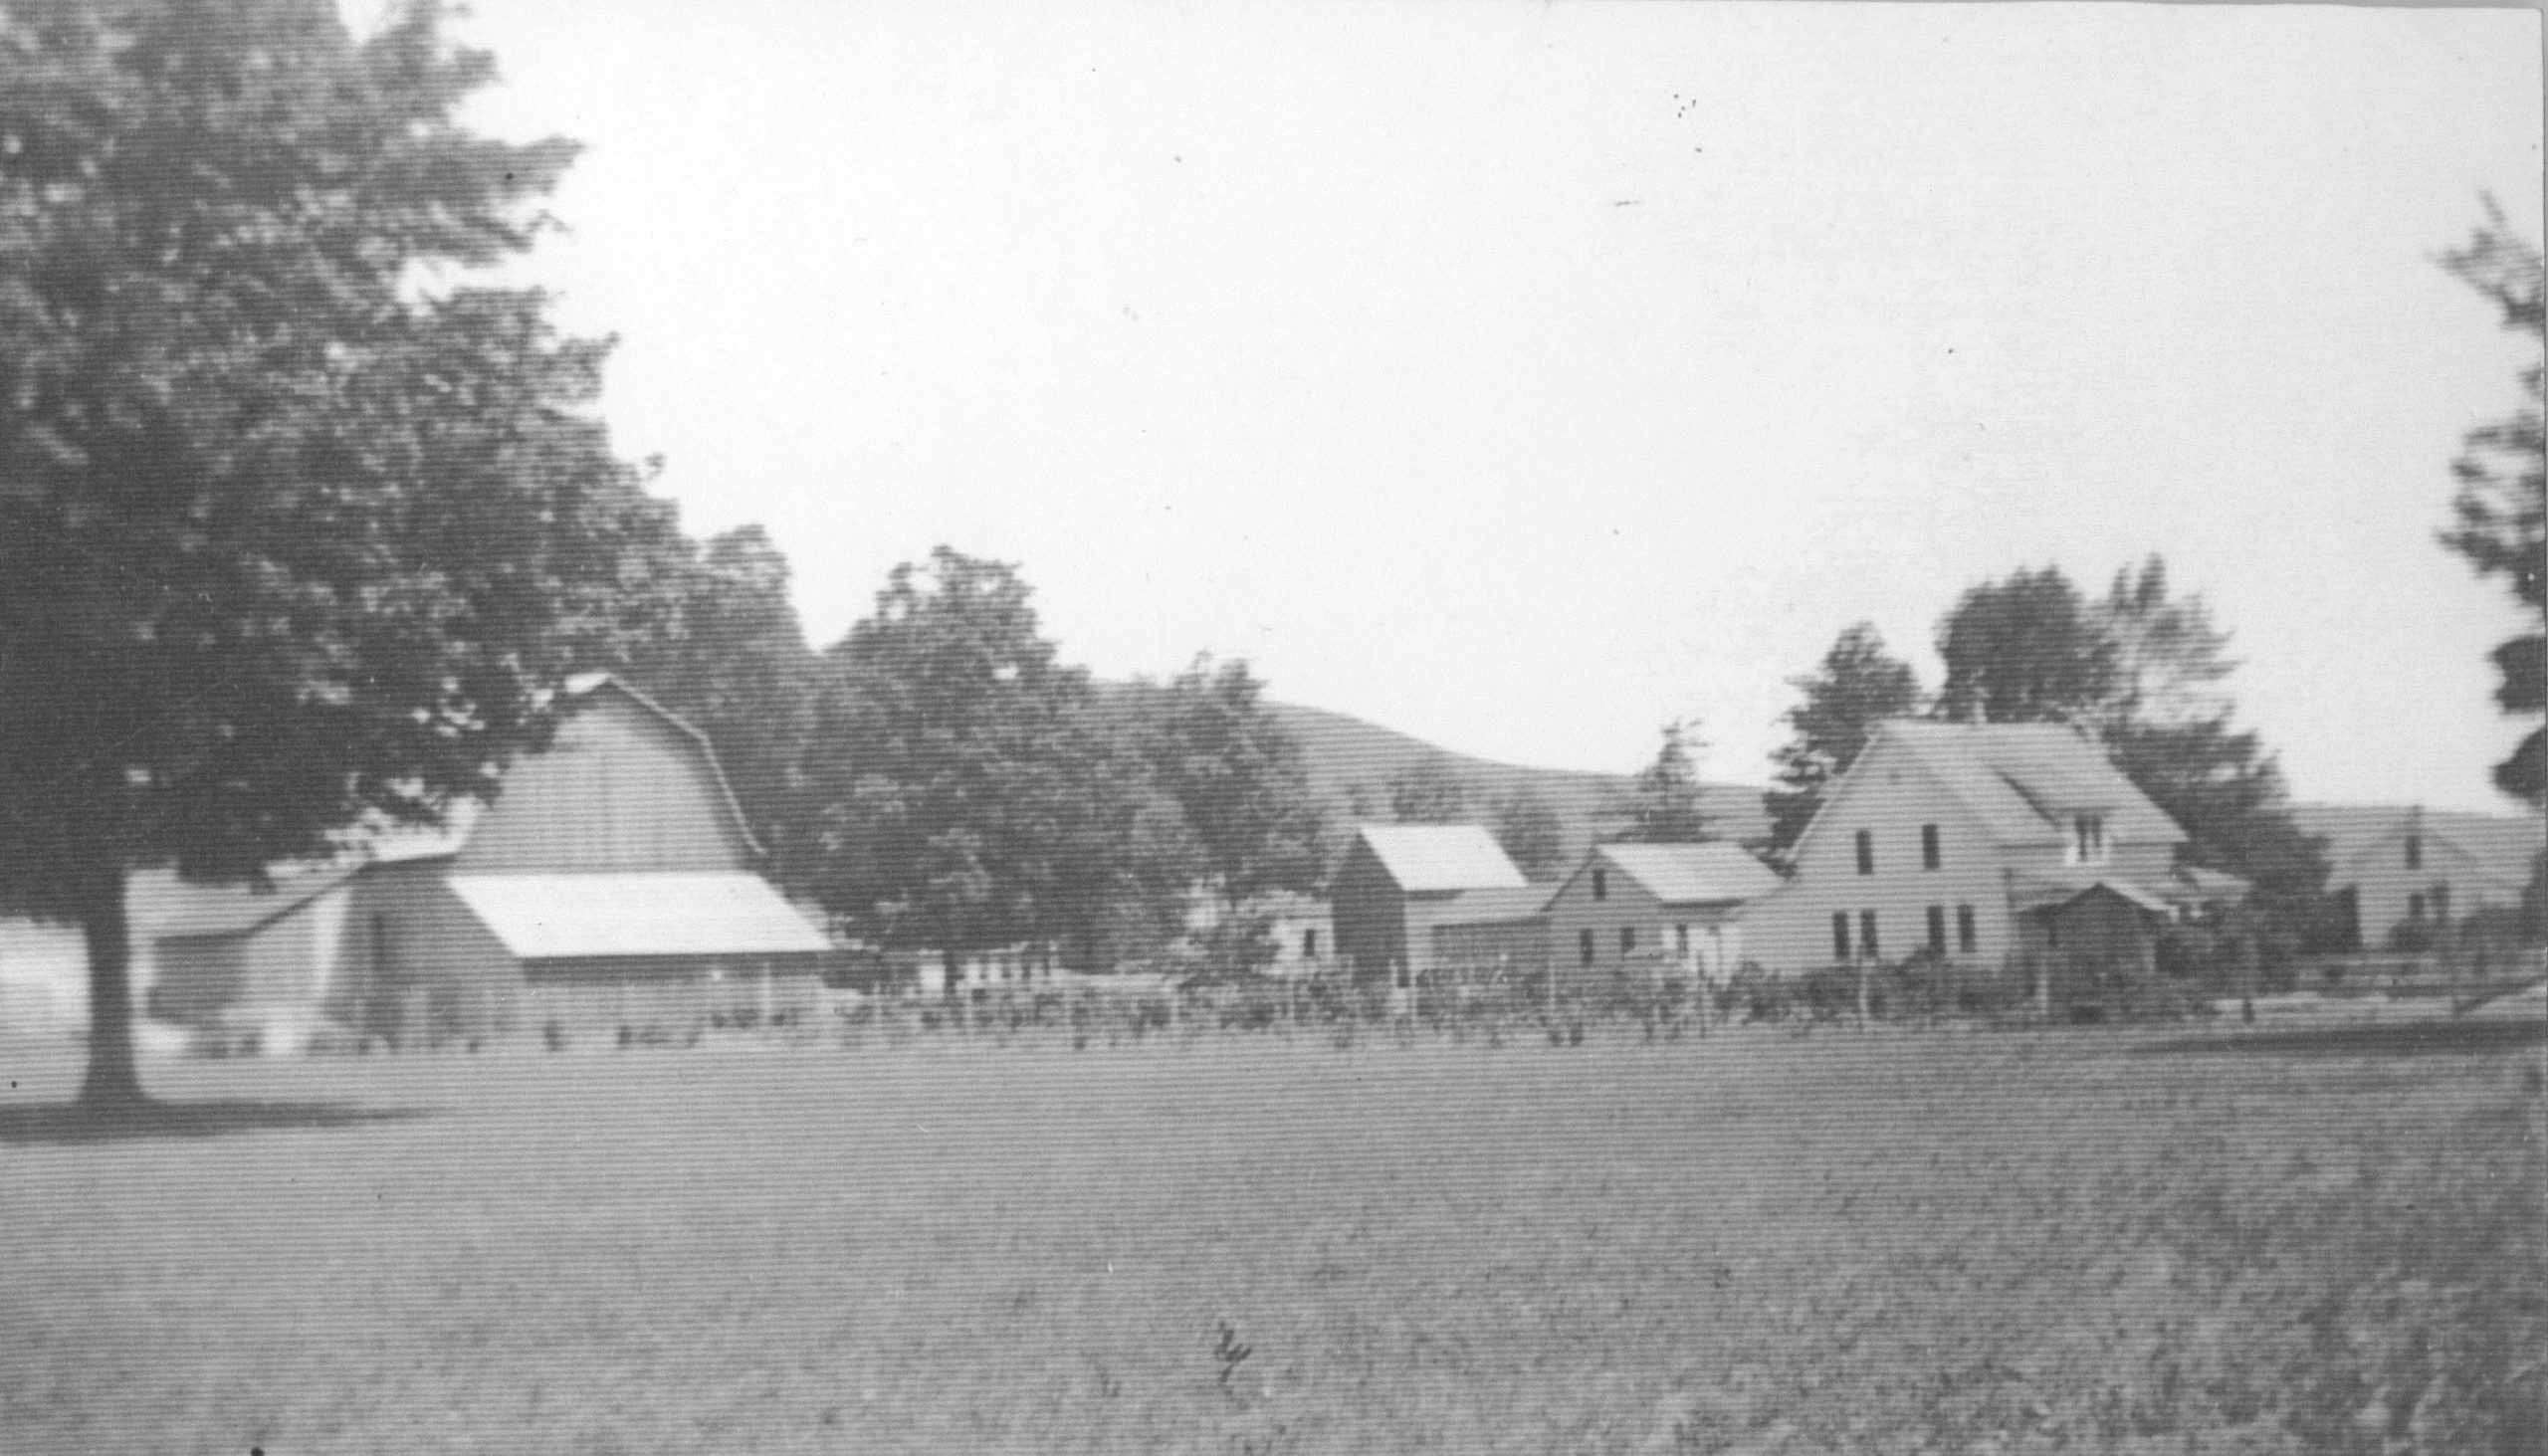 Olsen farmyard historic B&W photo